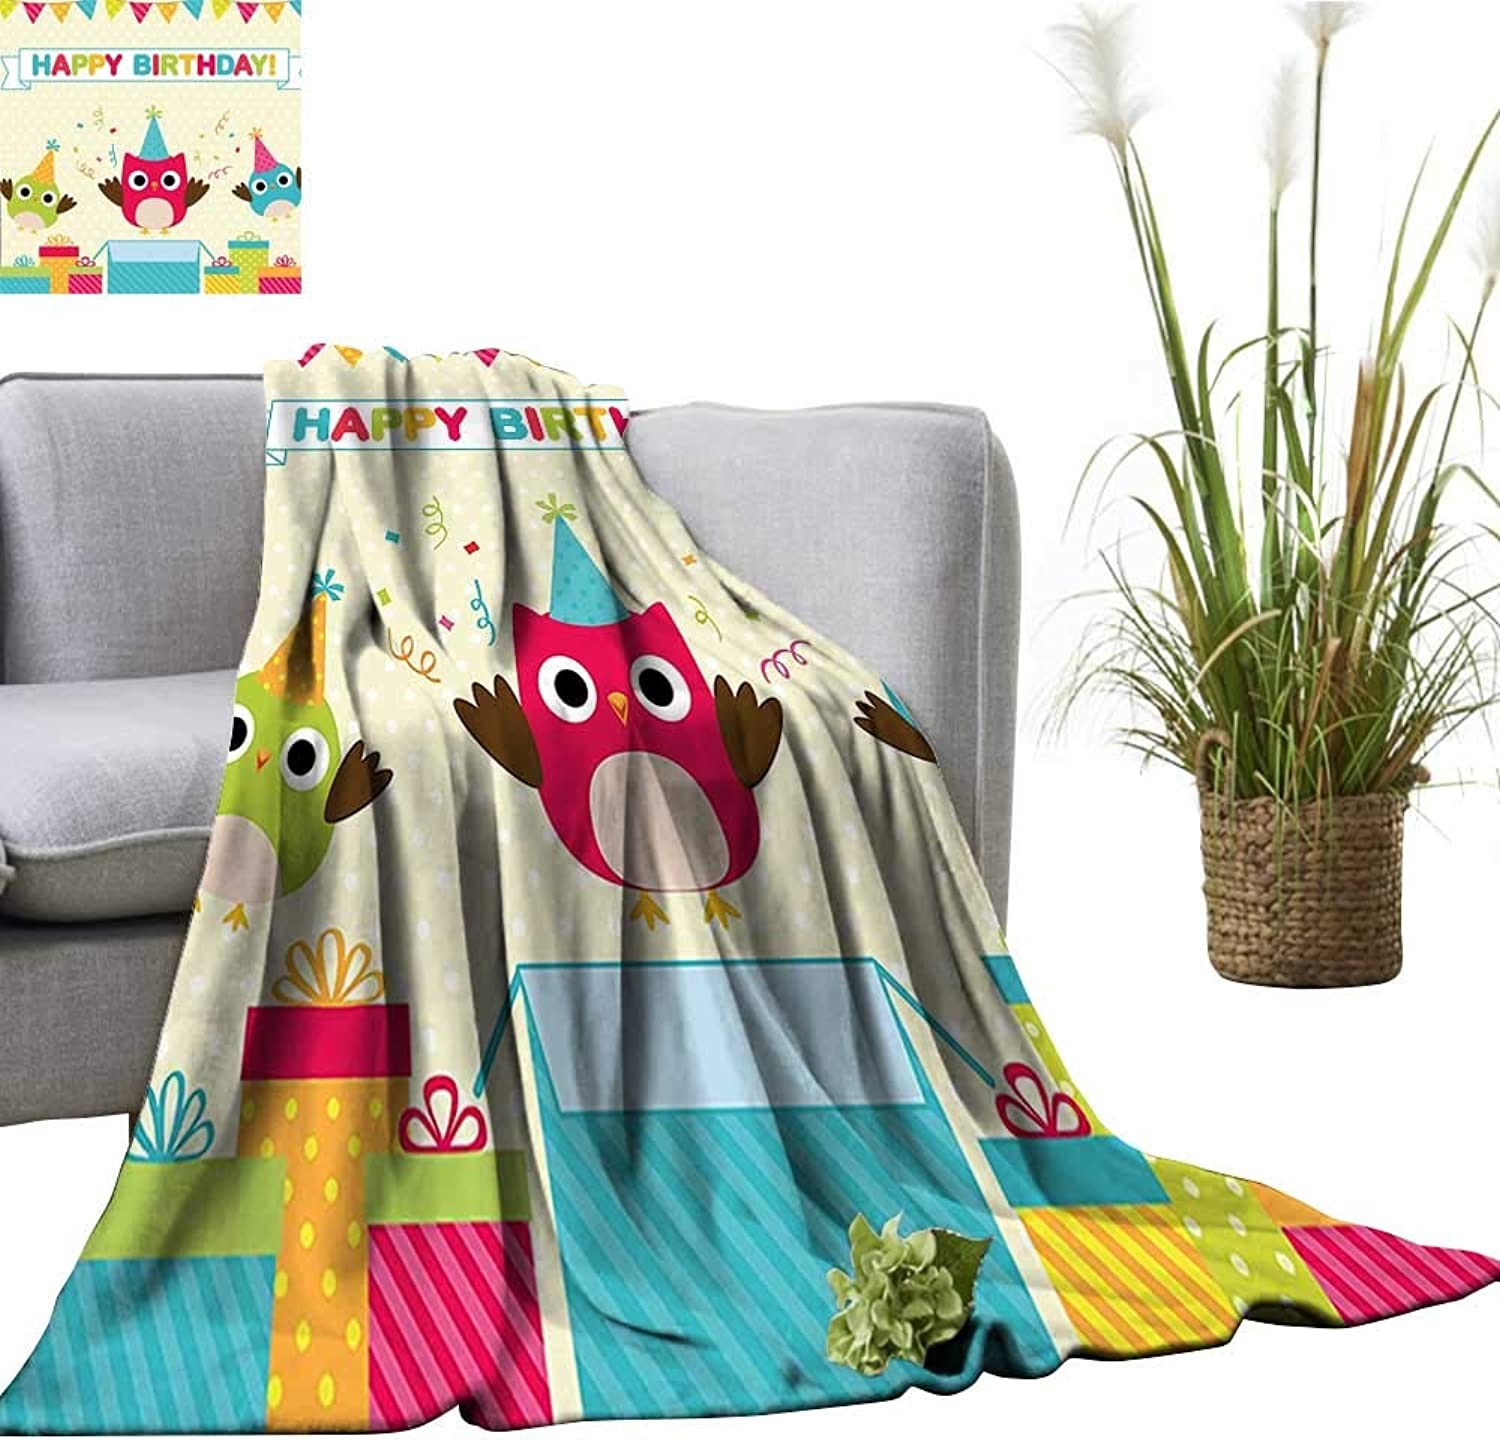 YOYI Digital Printing Blanket for Kids Happy Chubby Baby Owls Flags Box on Polka Dots Backdrop Image Better Deeper Sleep 50 x70